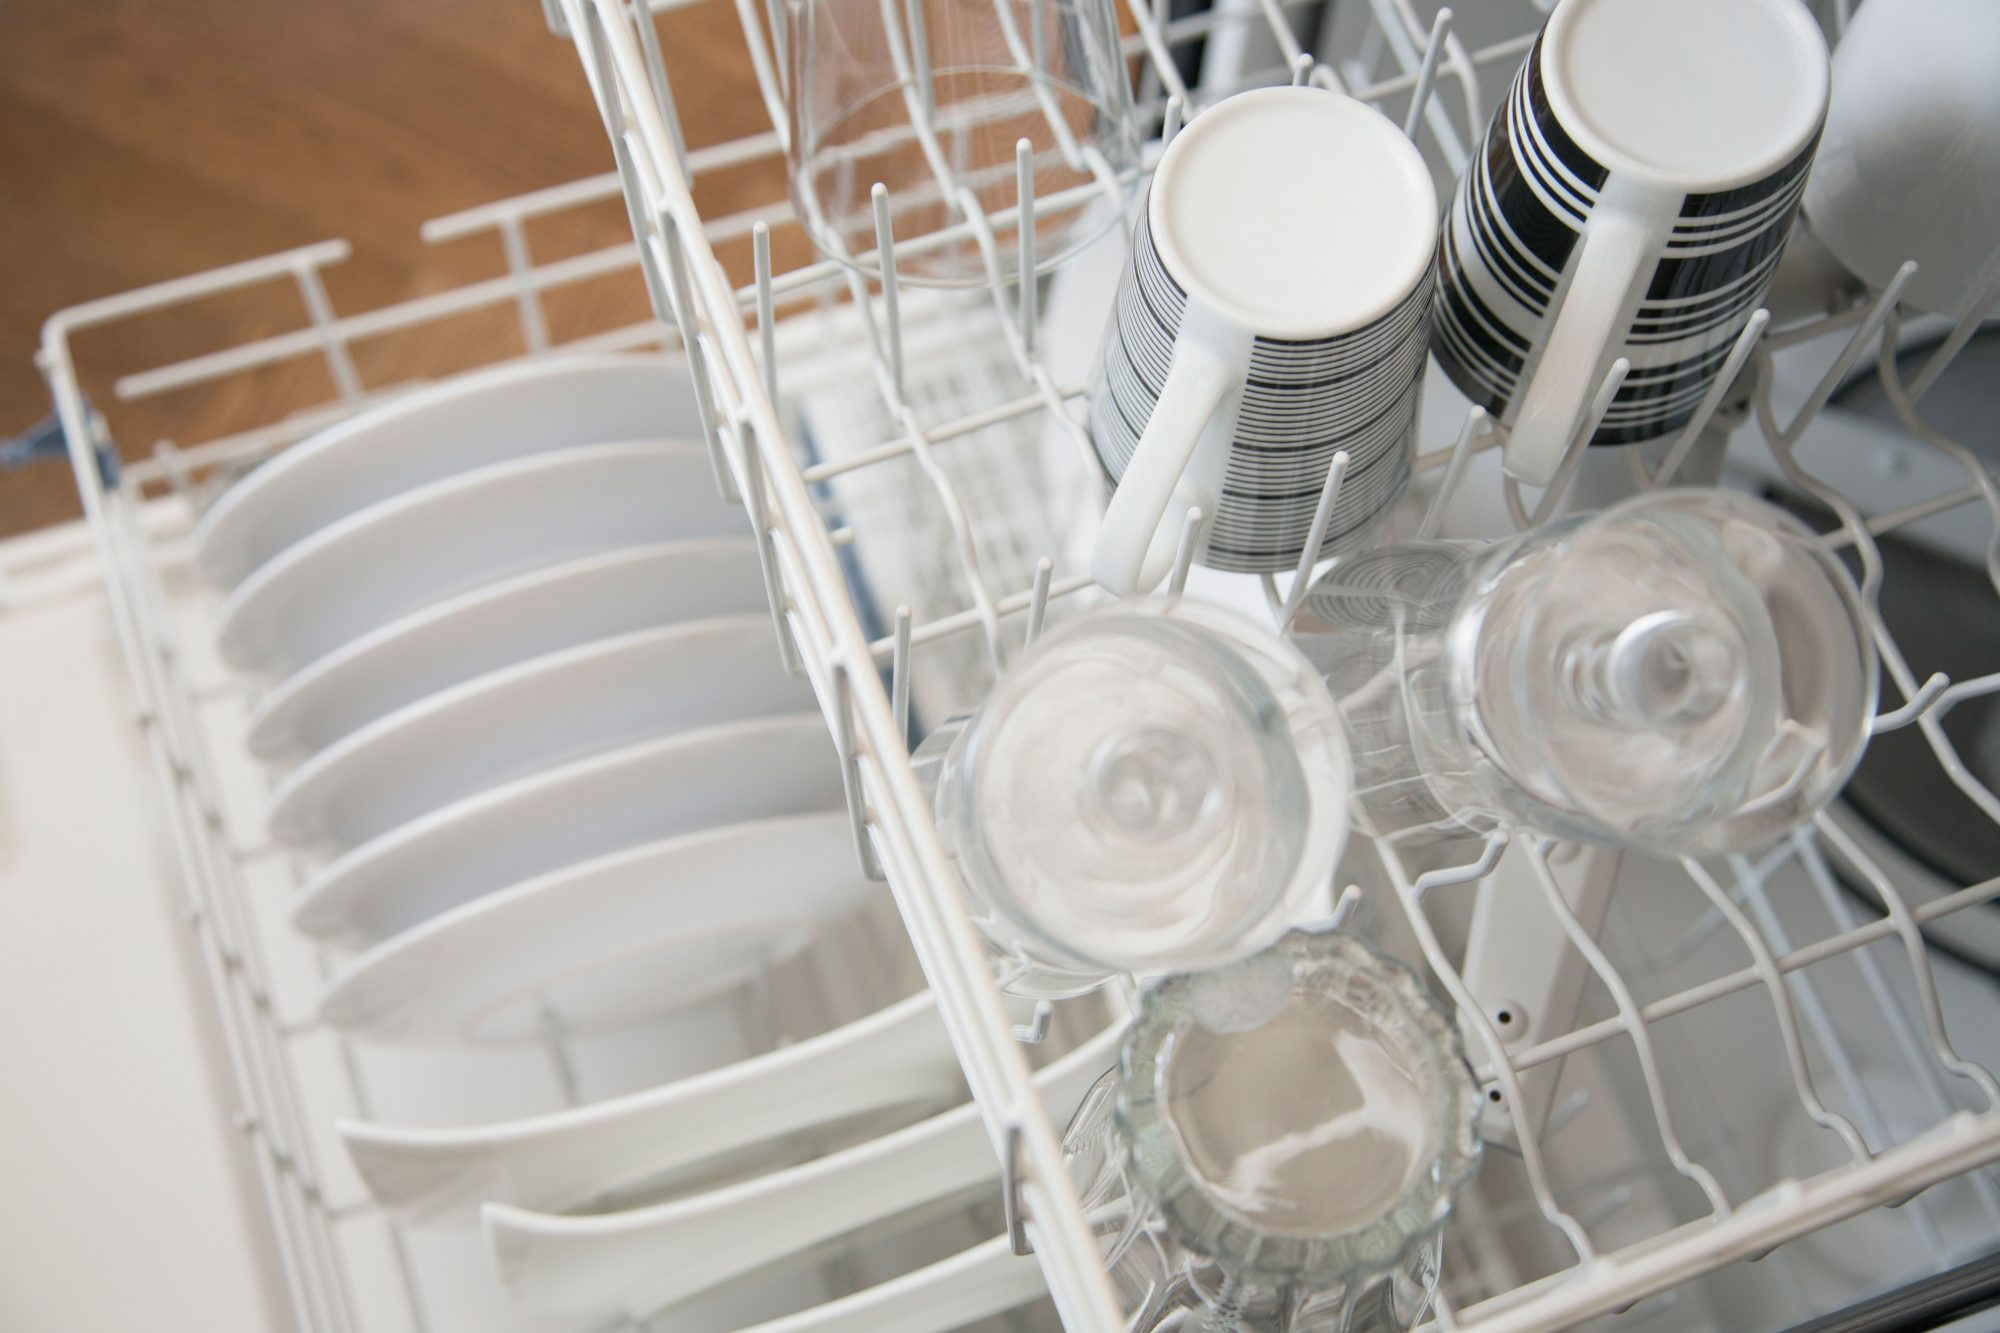 Clean White Dishes in Dishwasher